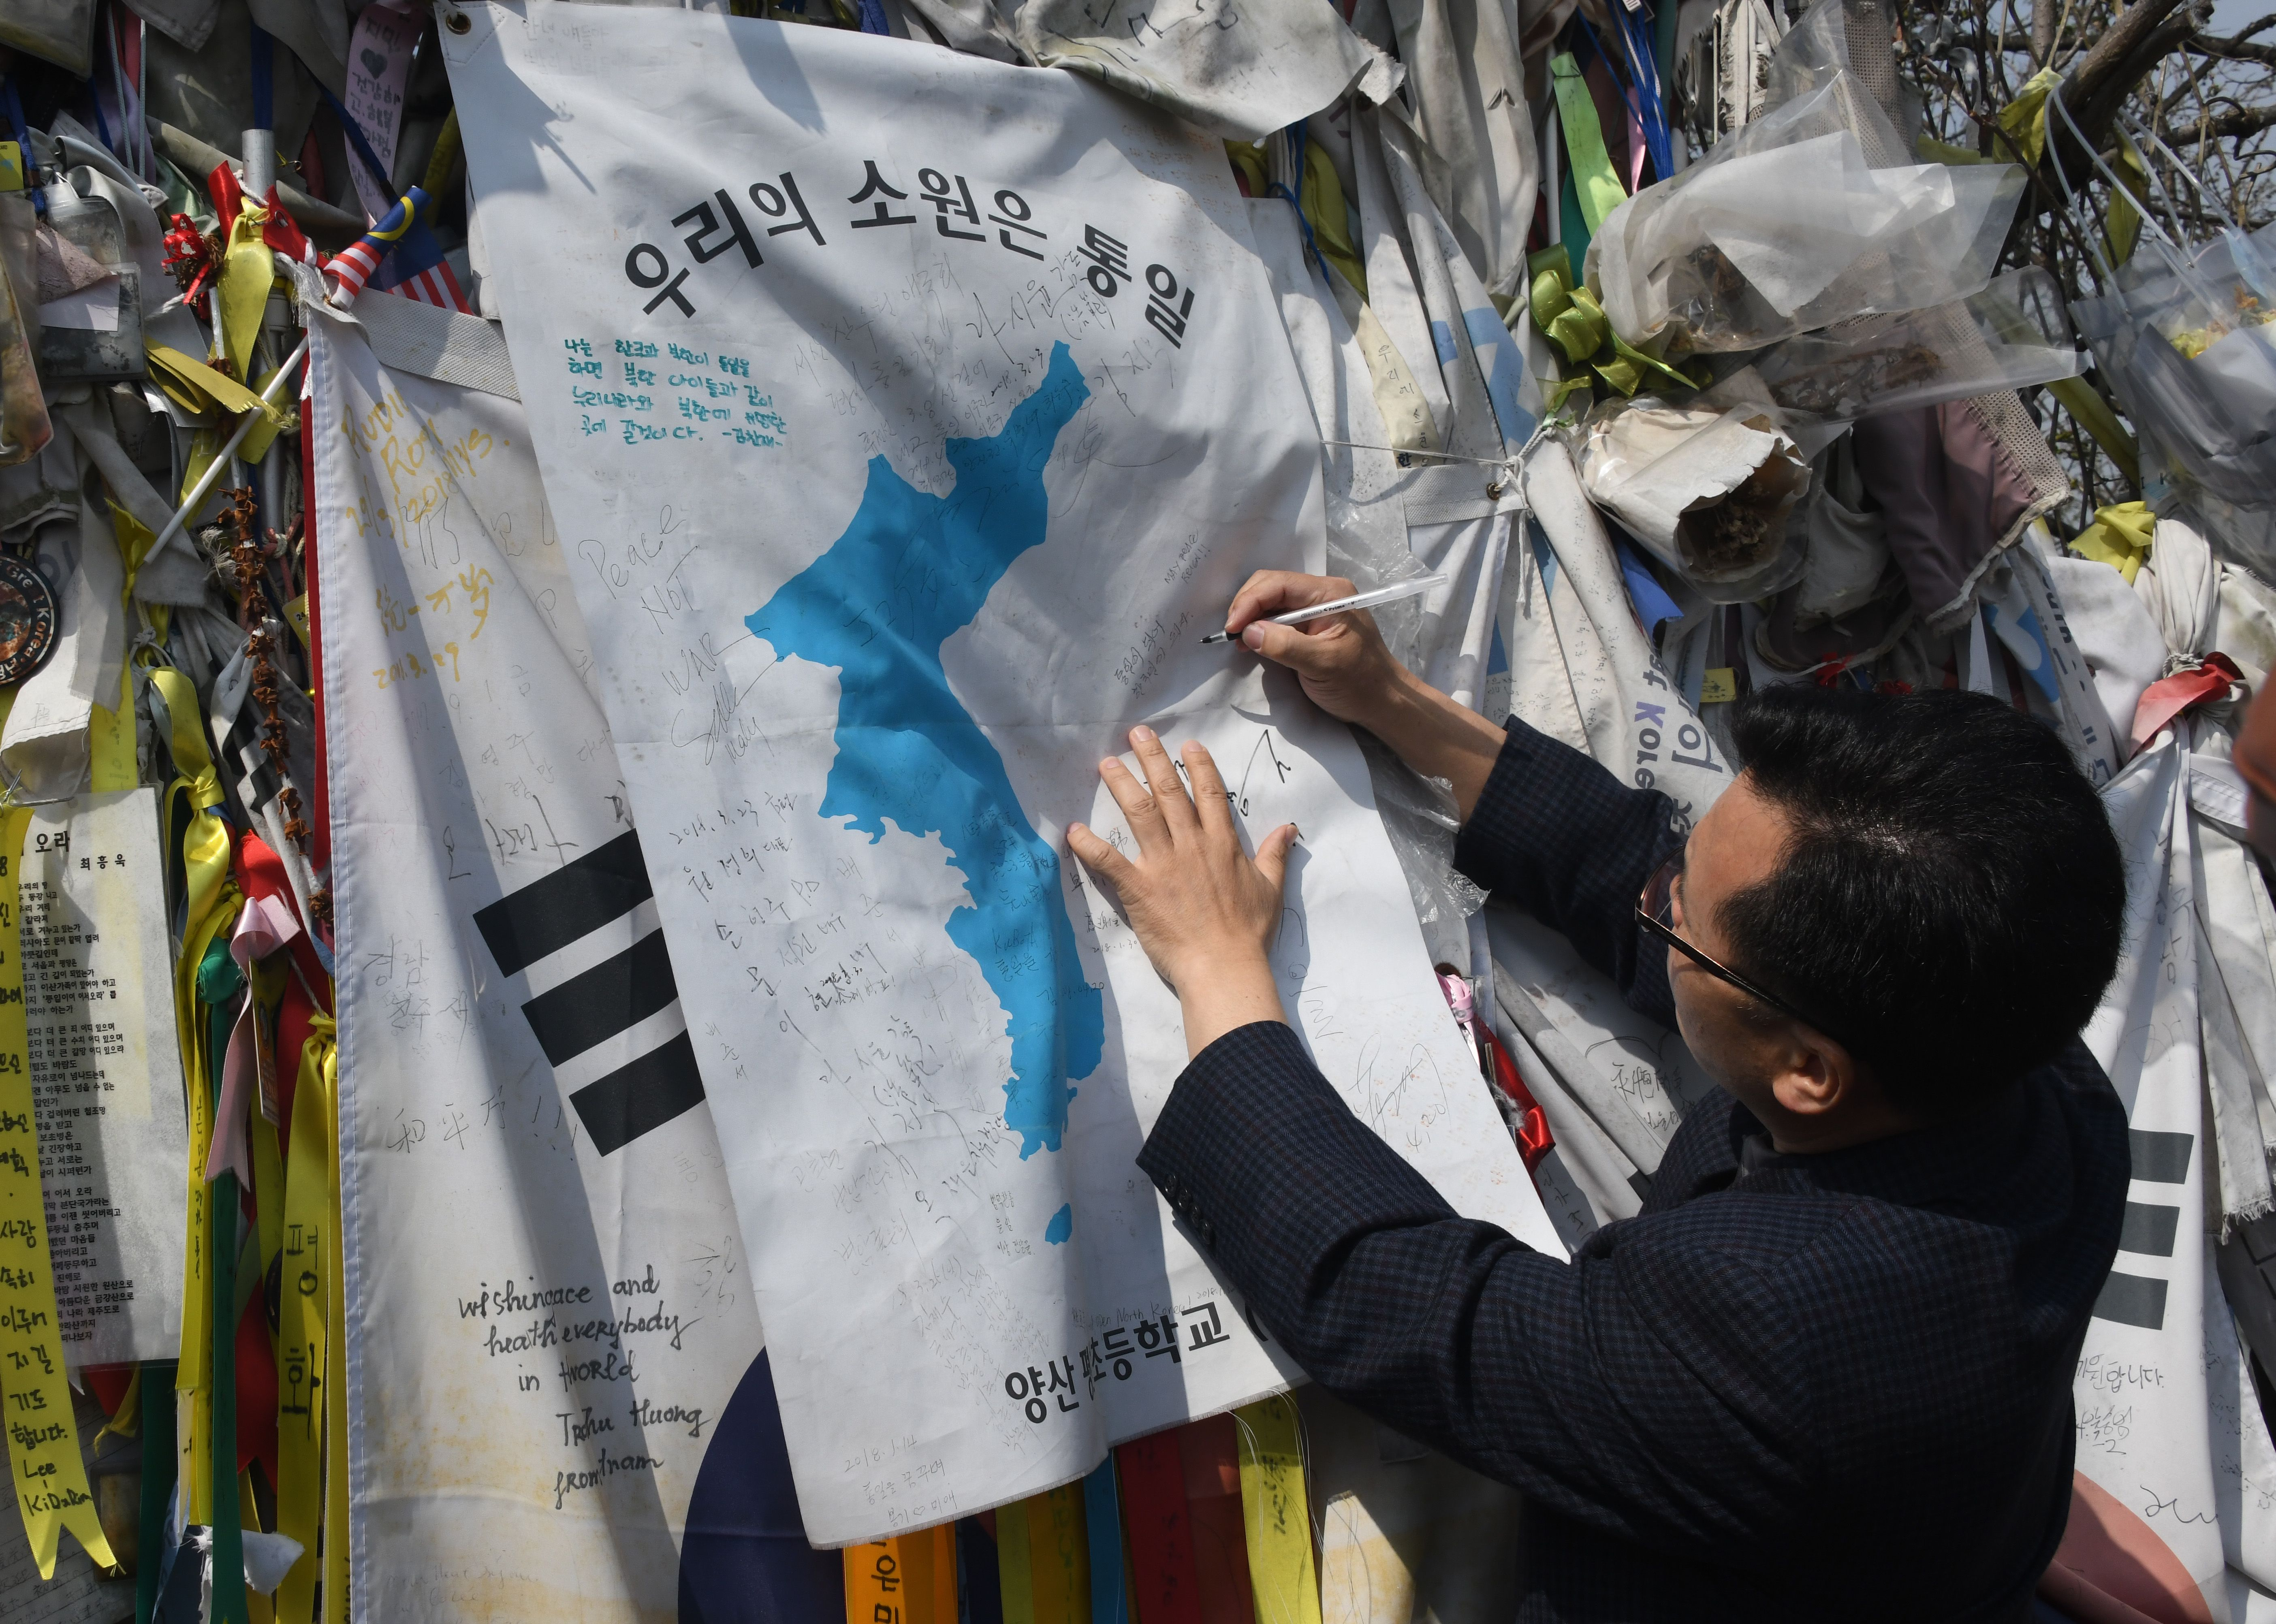 A man writes an inscription on a  Unification flag  hanging at a military fence at Imjingak peace park in Paju near the demilitarized zone dividing the two Koreas on April 26, 2018 ahead of the upcoming inter-Korea summit.